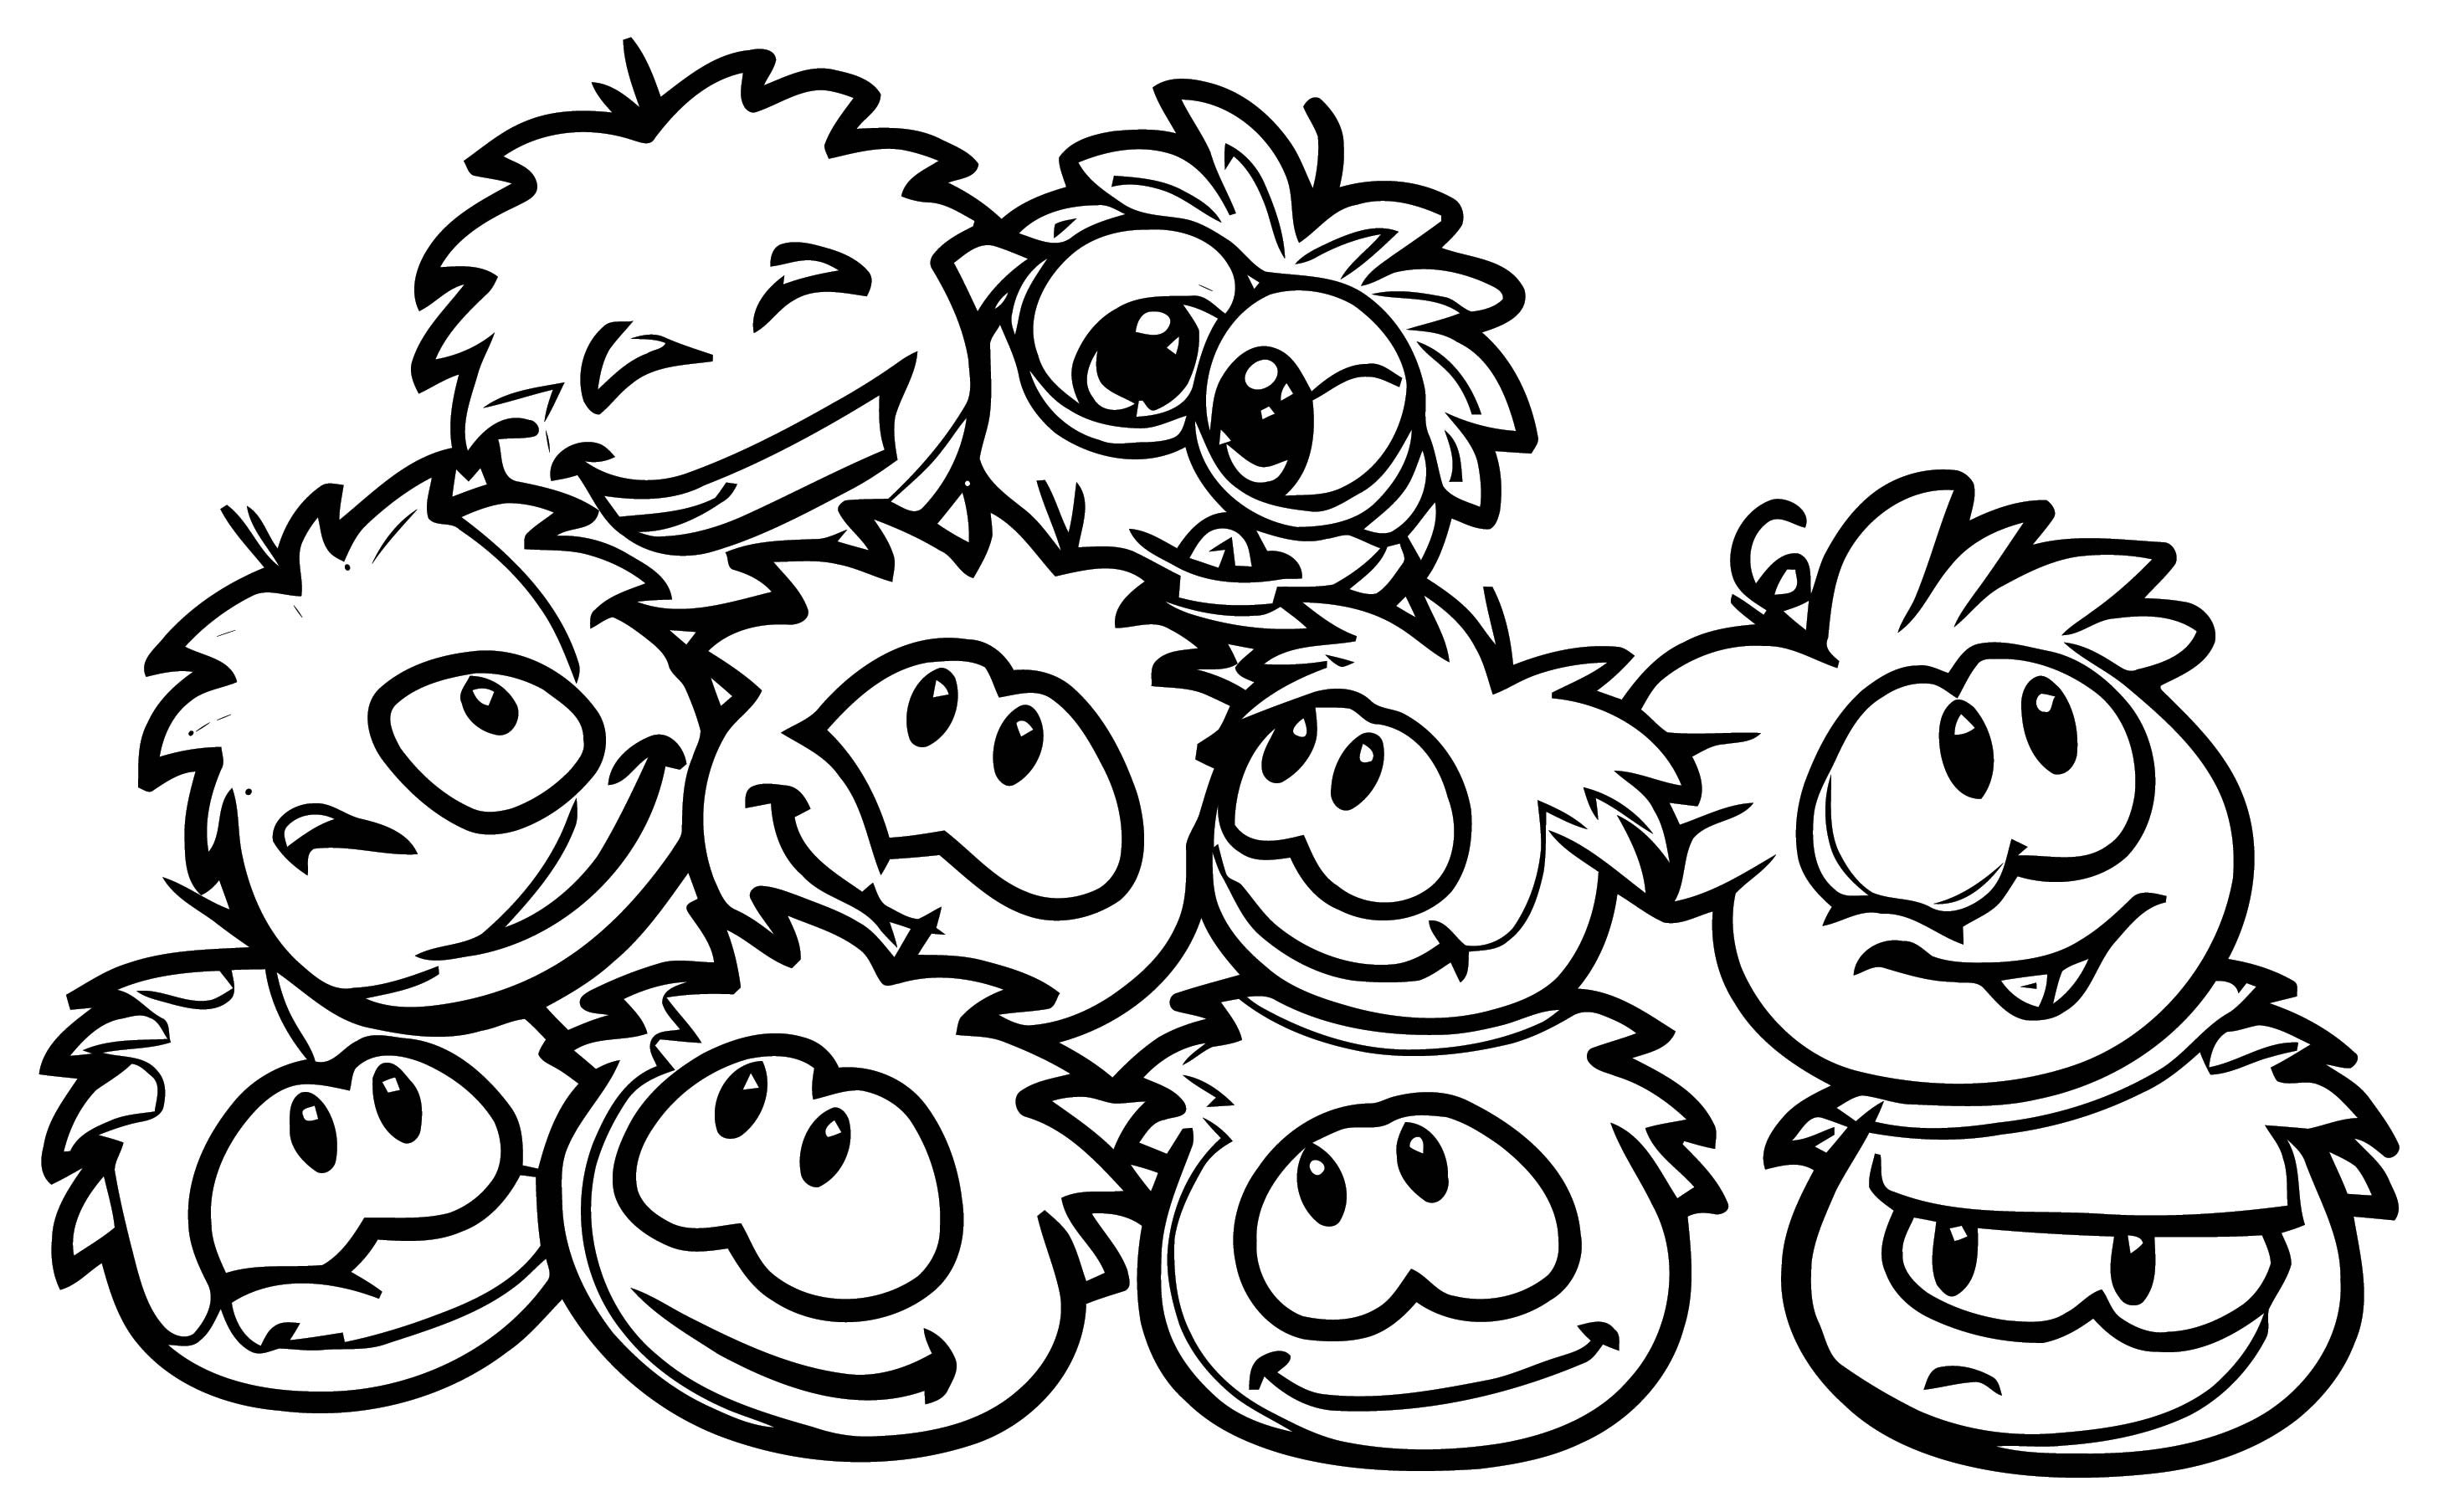 Puffles Club Penguin Coloring Page 1